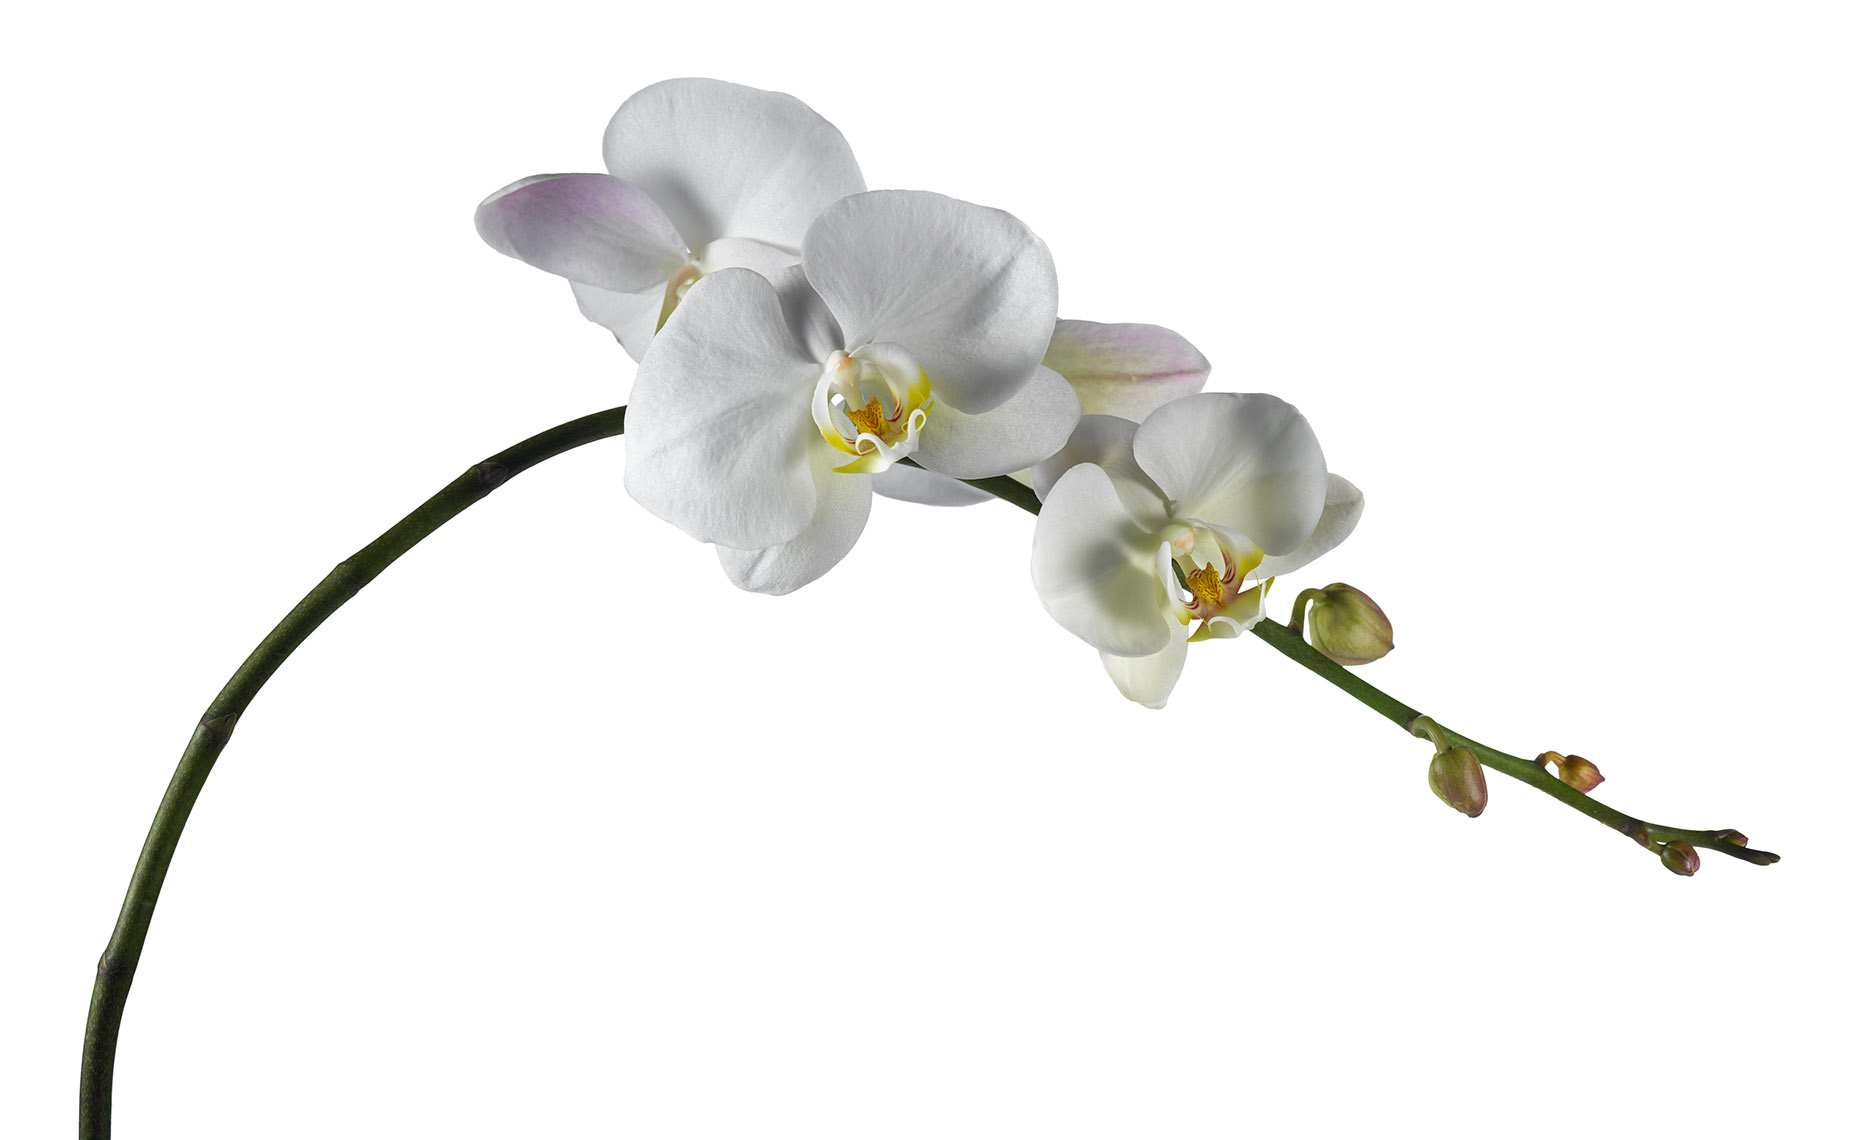 Botanical Still Life | White Phalaenopsis Orchid Flower Stem